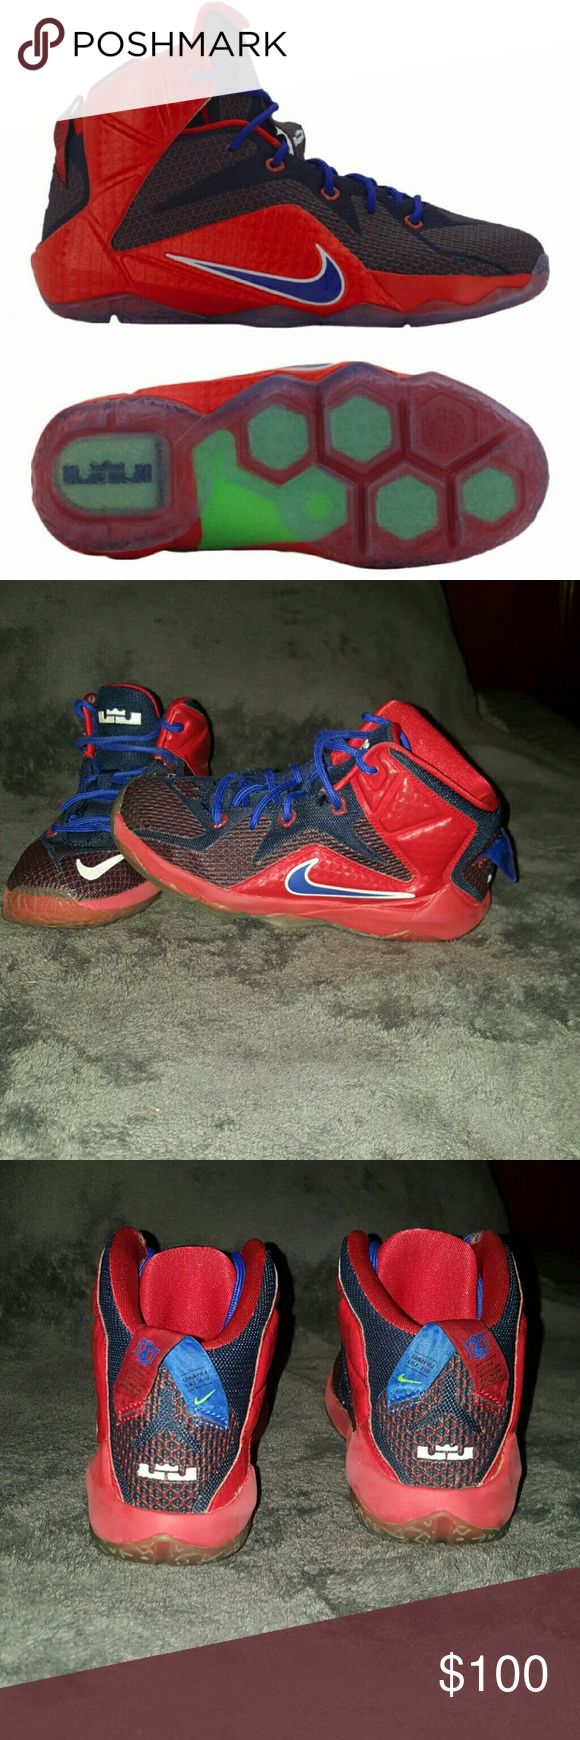 Kids Nike Lebrons XIII Red blue and white kids Nike Lebrons in great condition. Needs new laces. Nike Shoes Sneakers